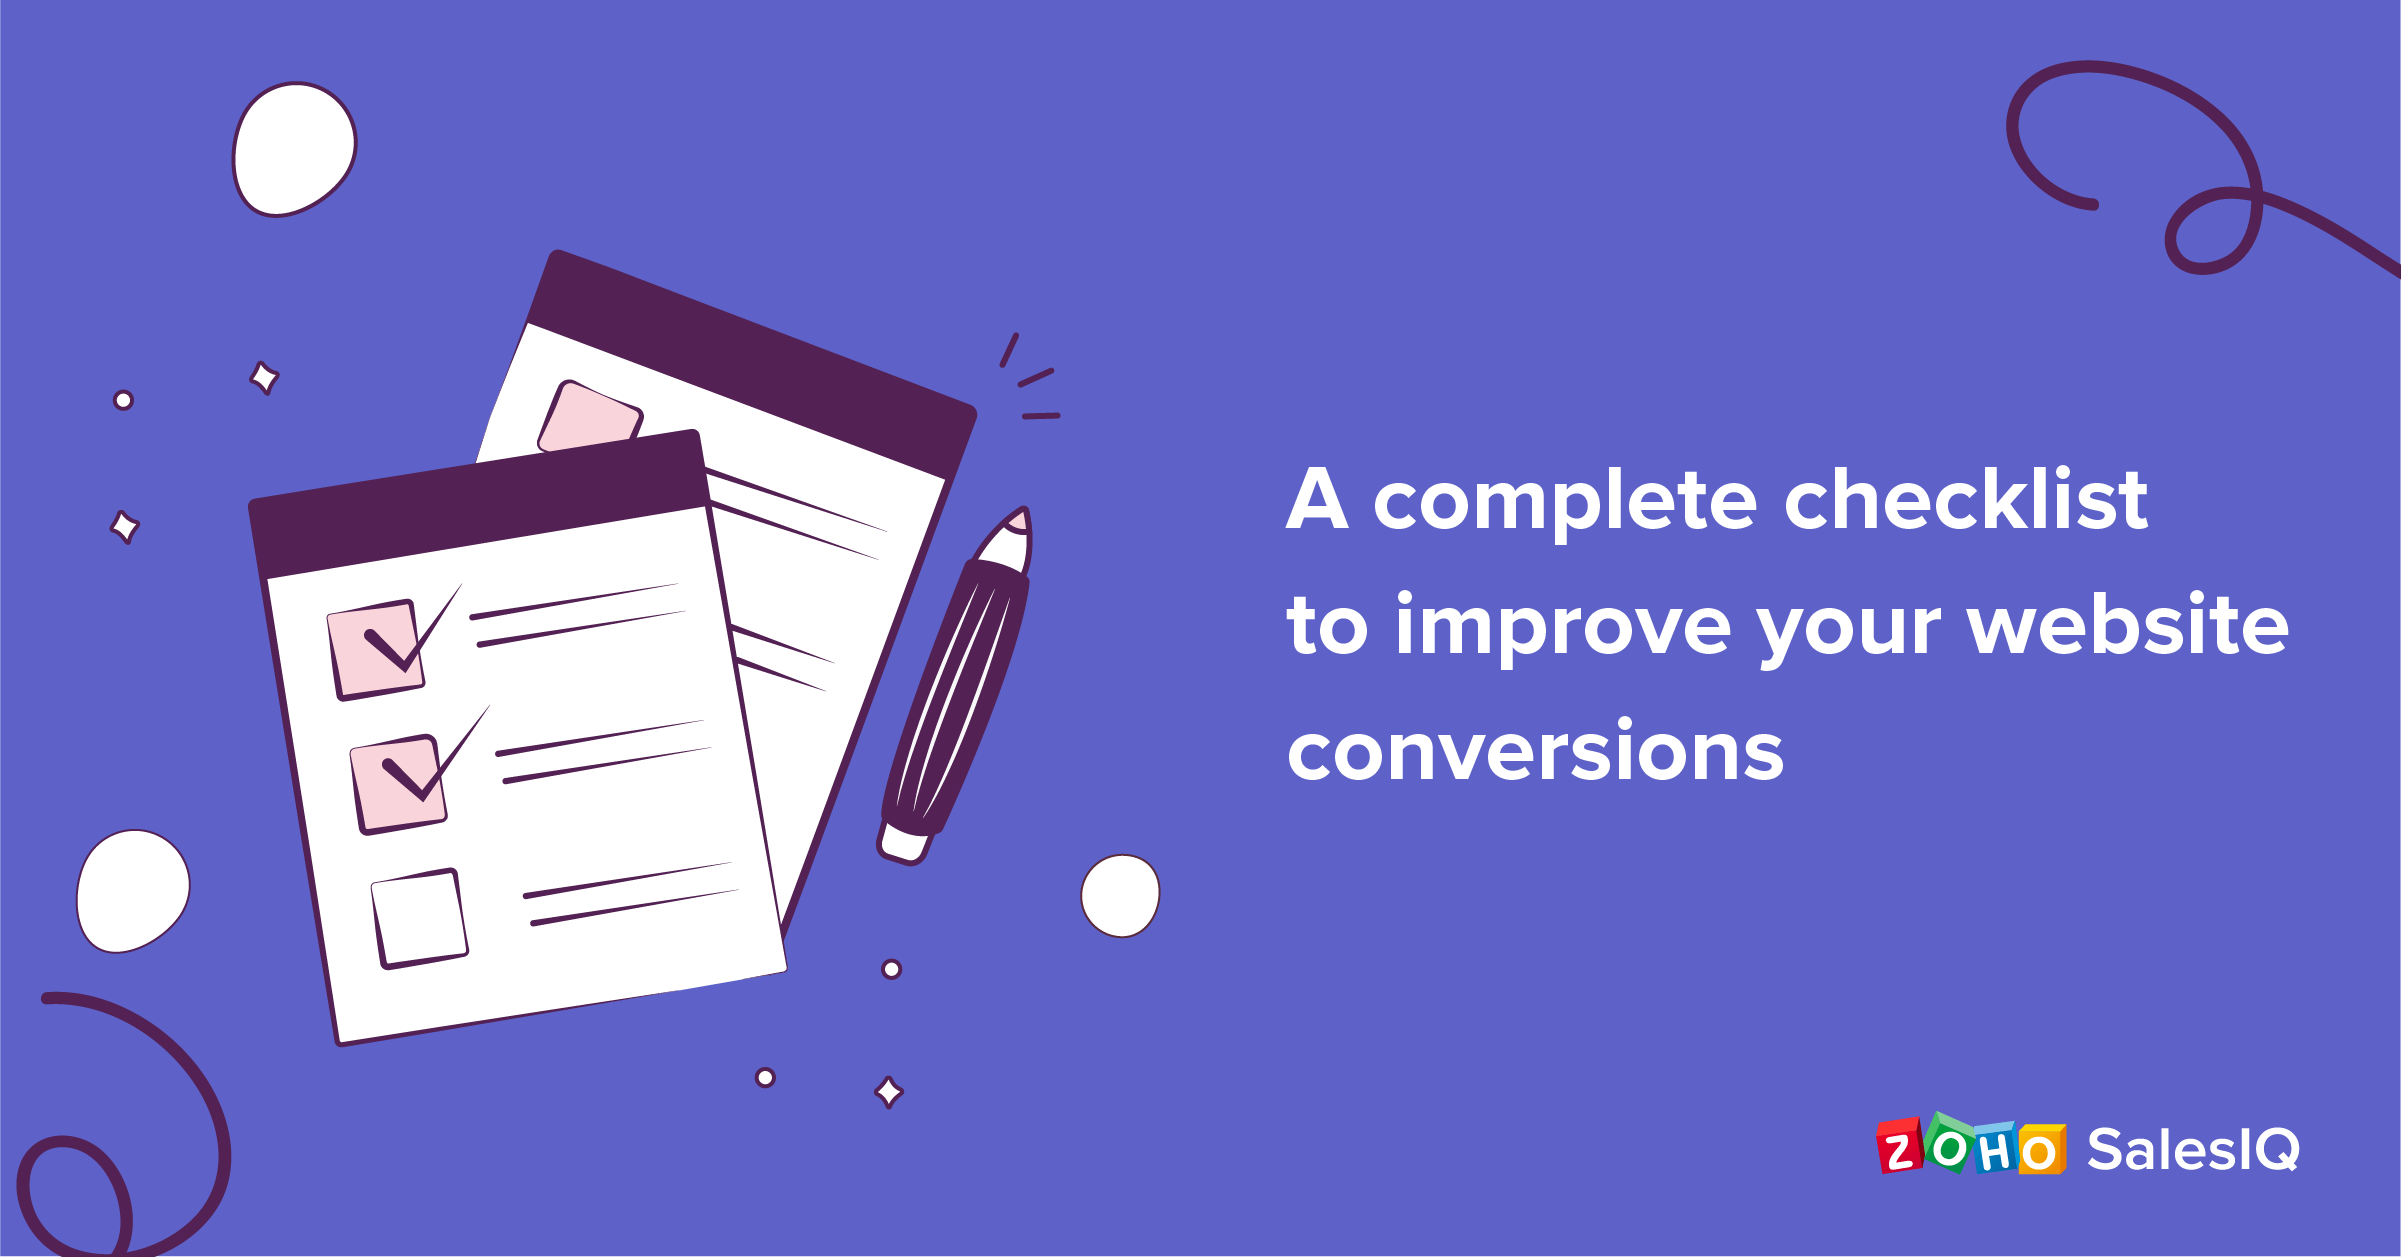 A marketer's checklist to improve website conversions